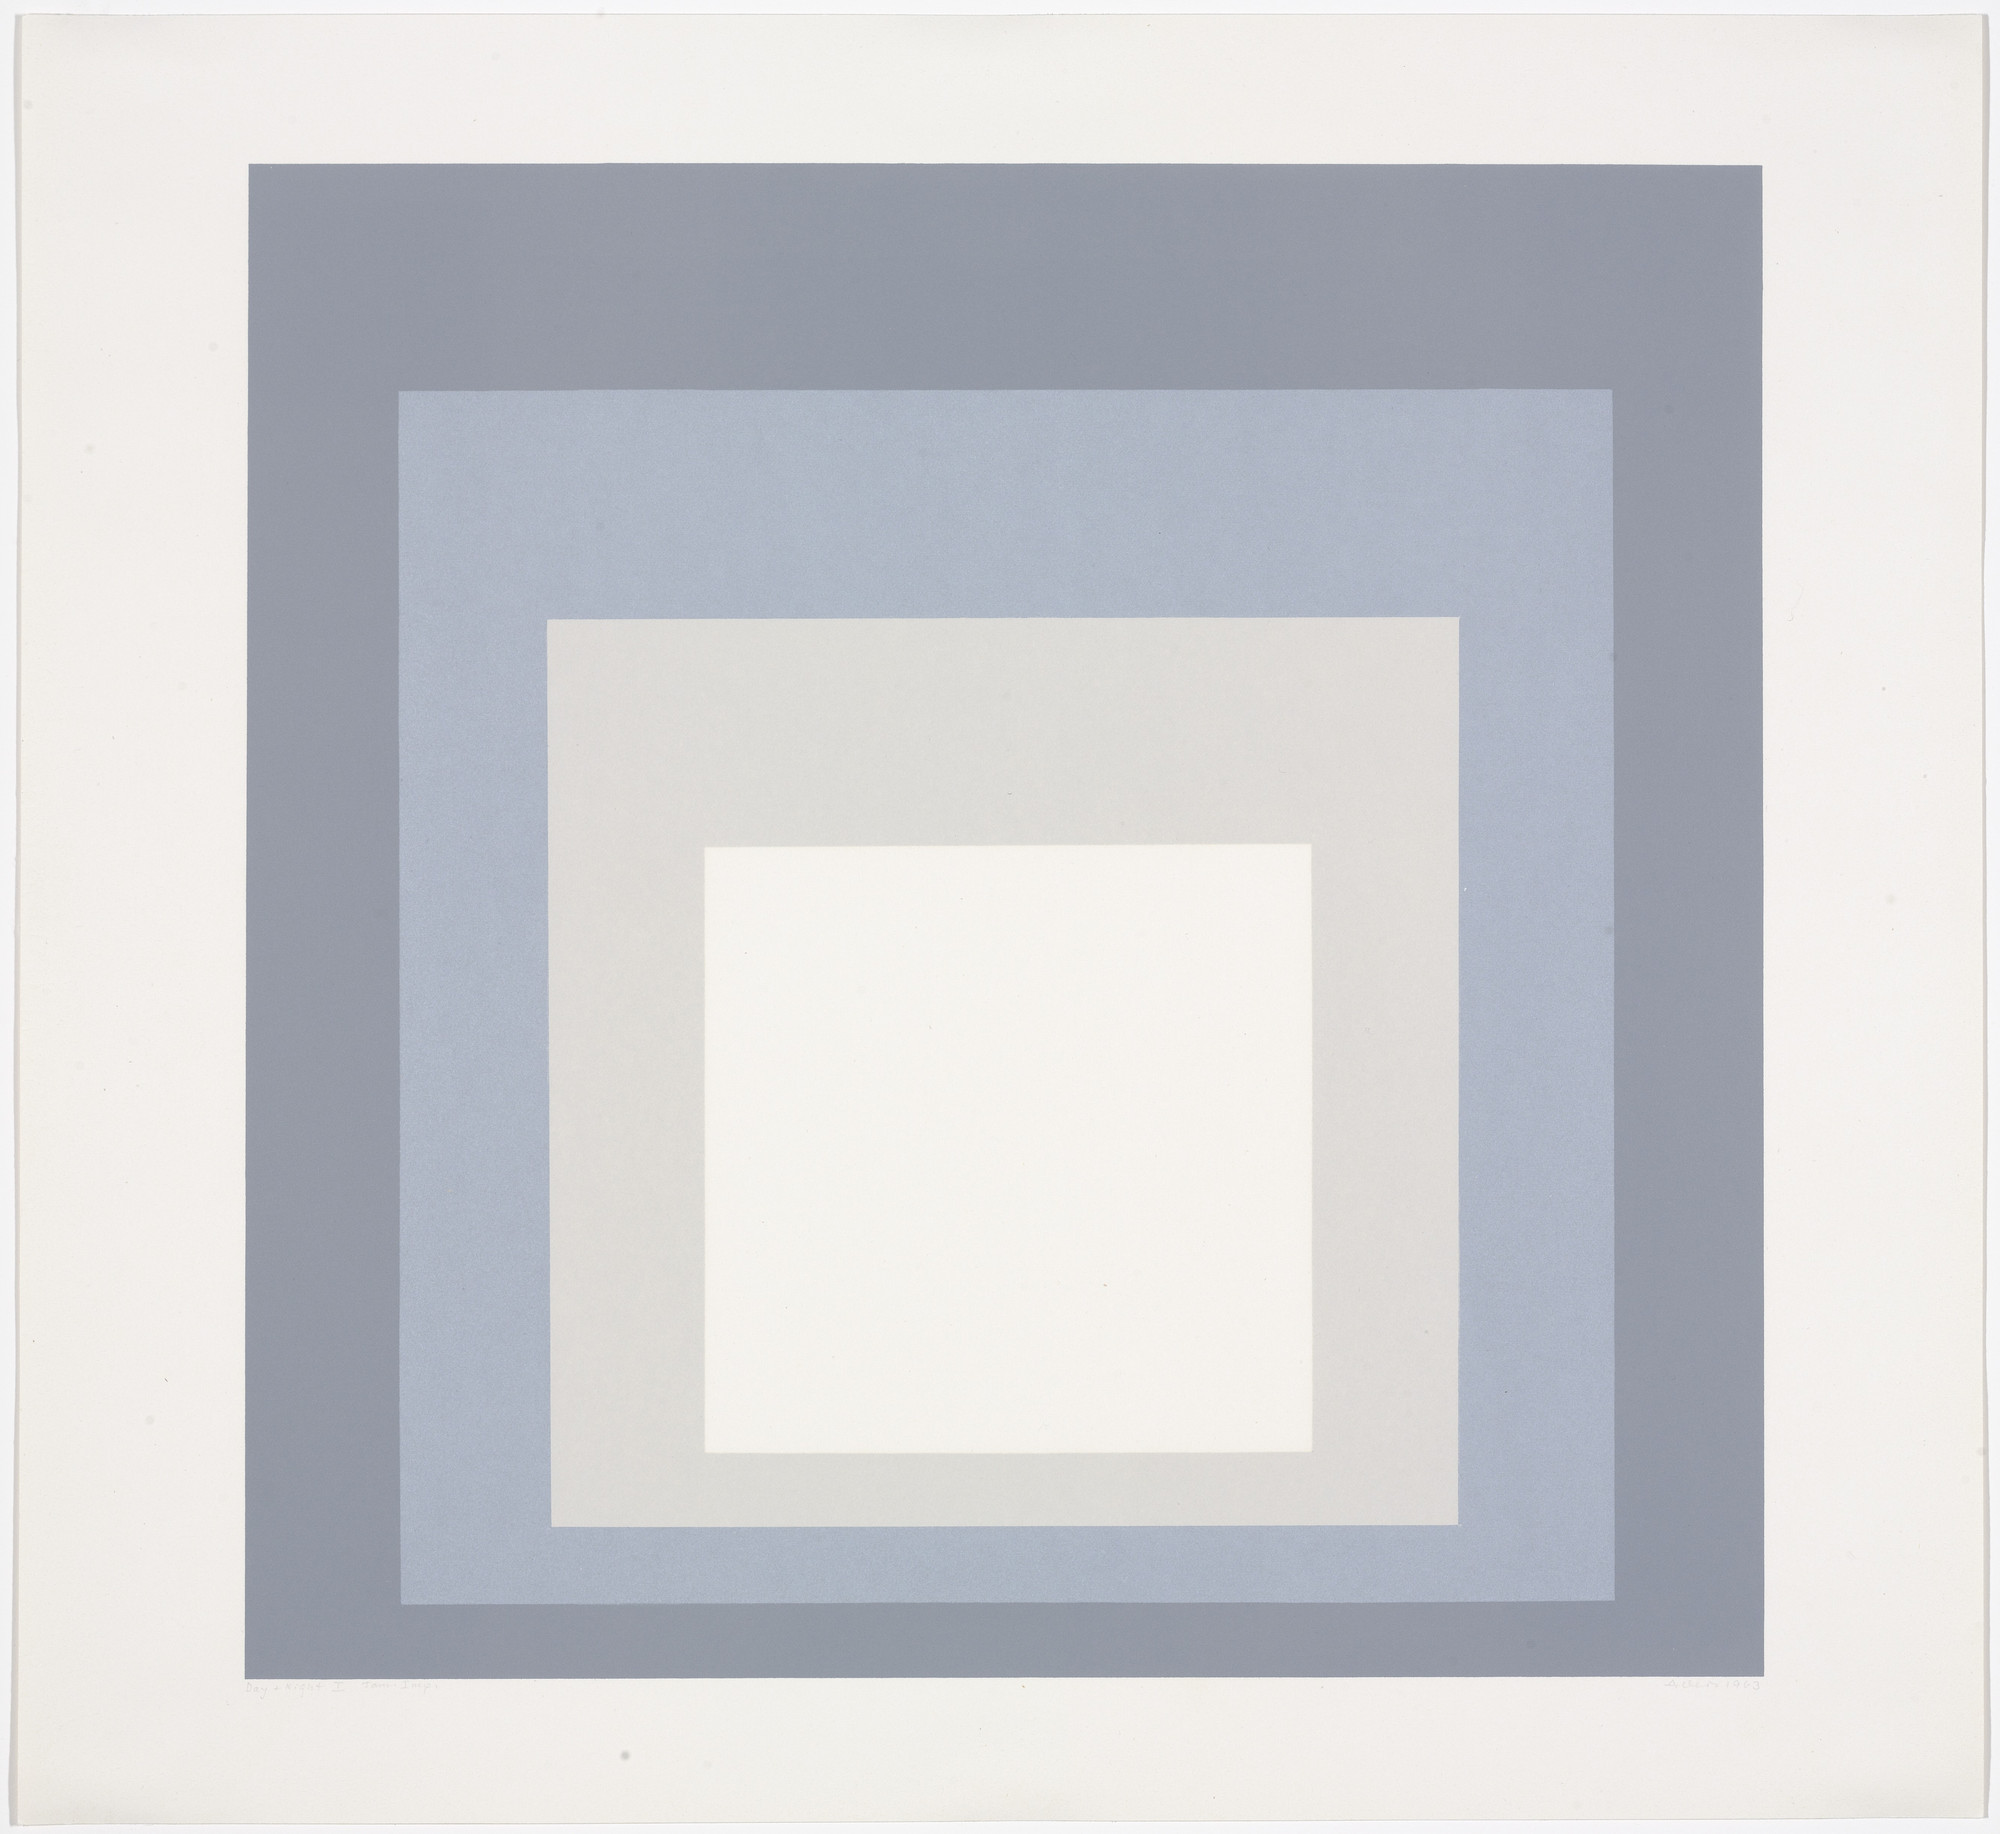 Josef Albers. Day + Night I from Day and Night: Homage to the Square. 1963